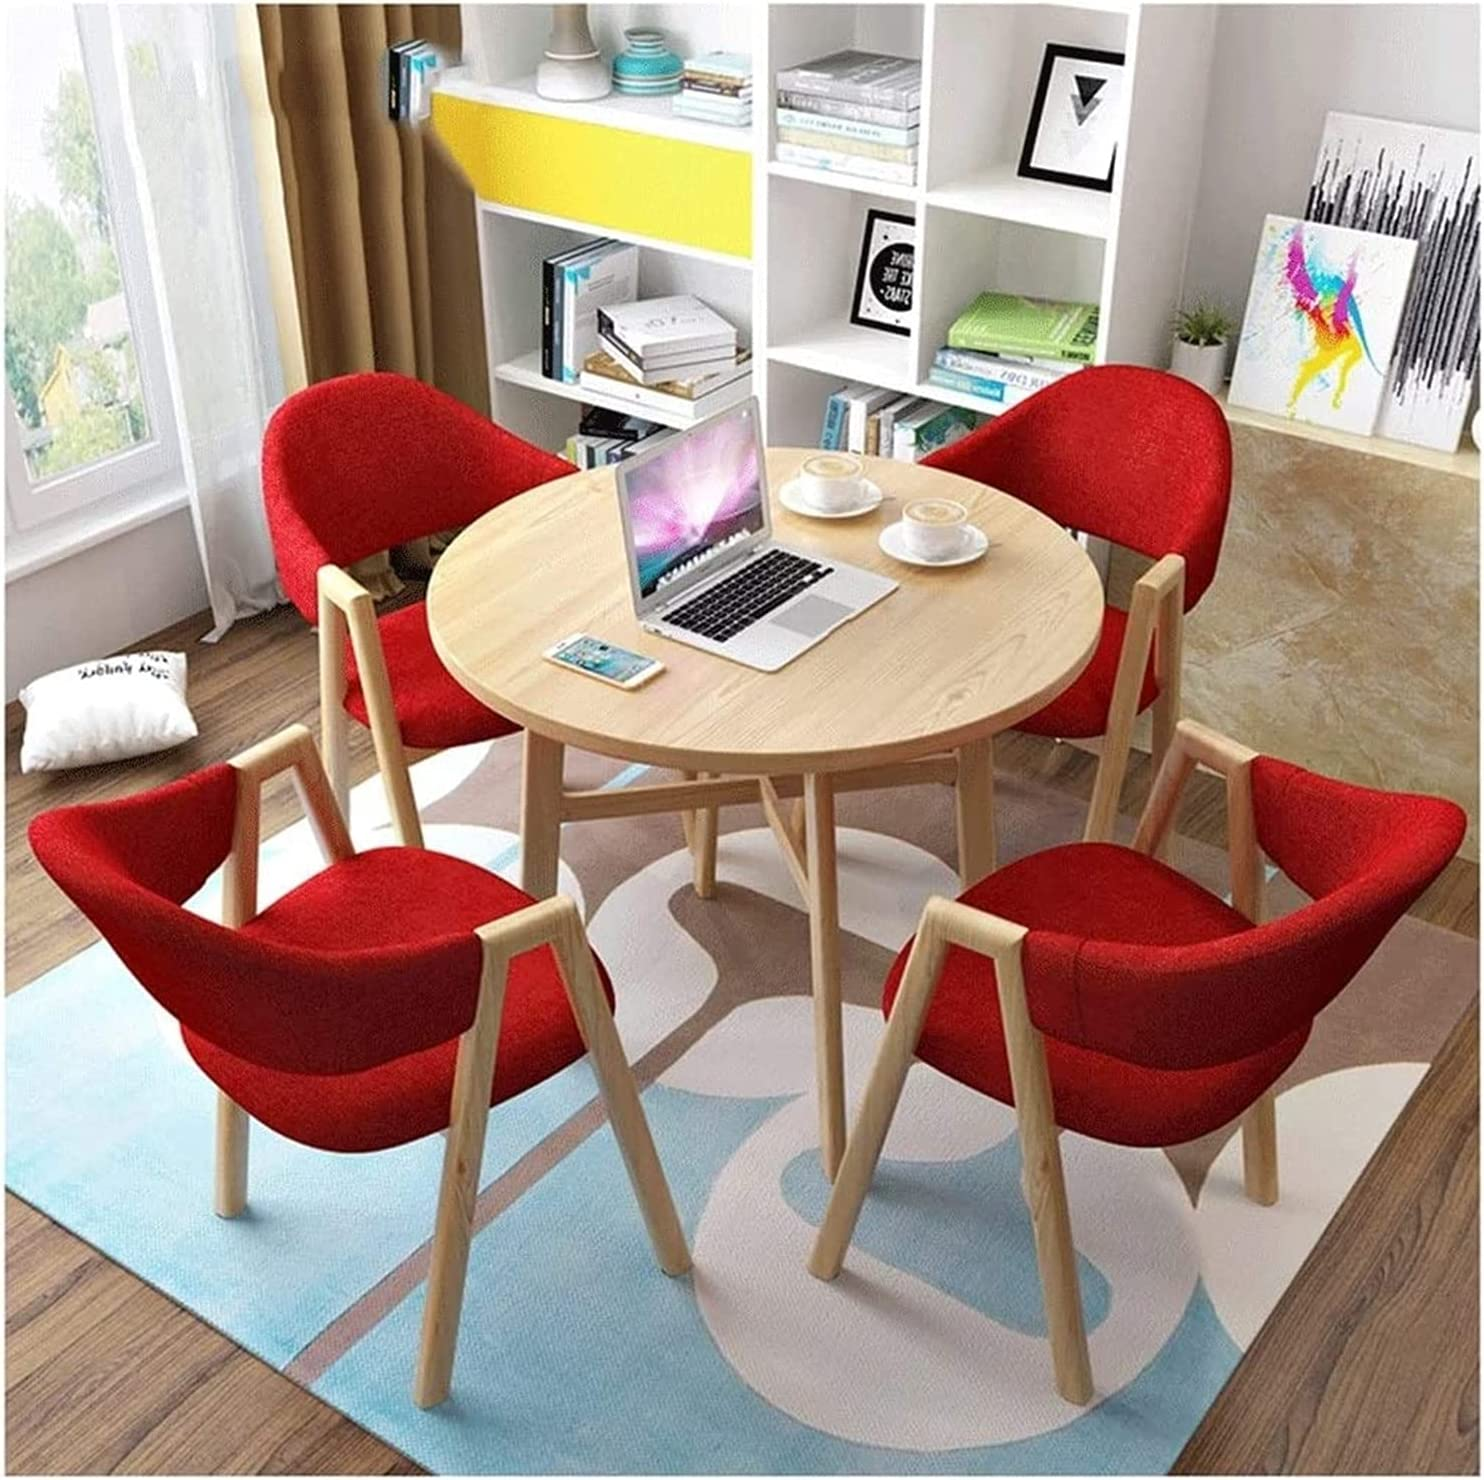 Modern Furniture Round Max 71% OFF Dining Table Hall Dallas Mall Business Set and